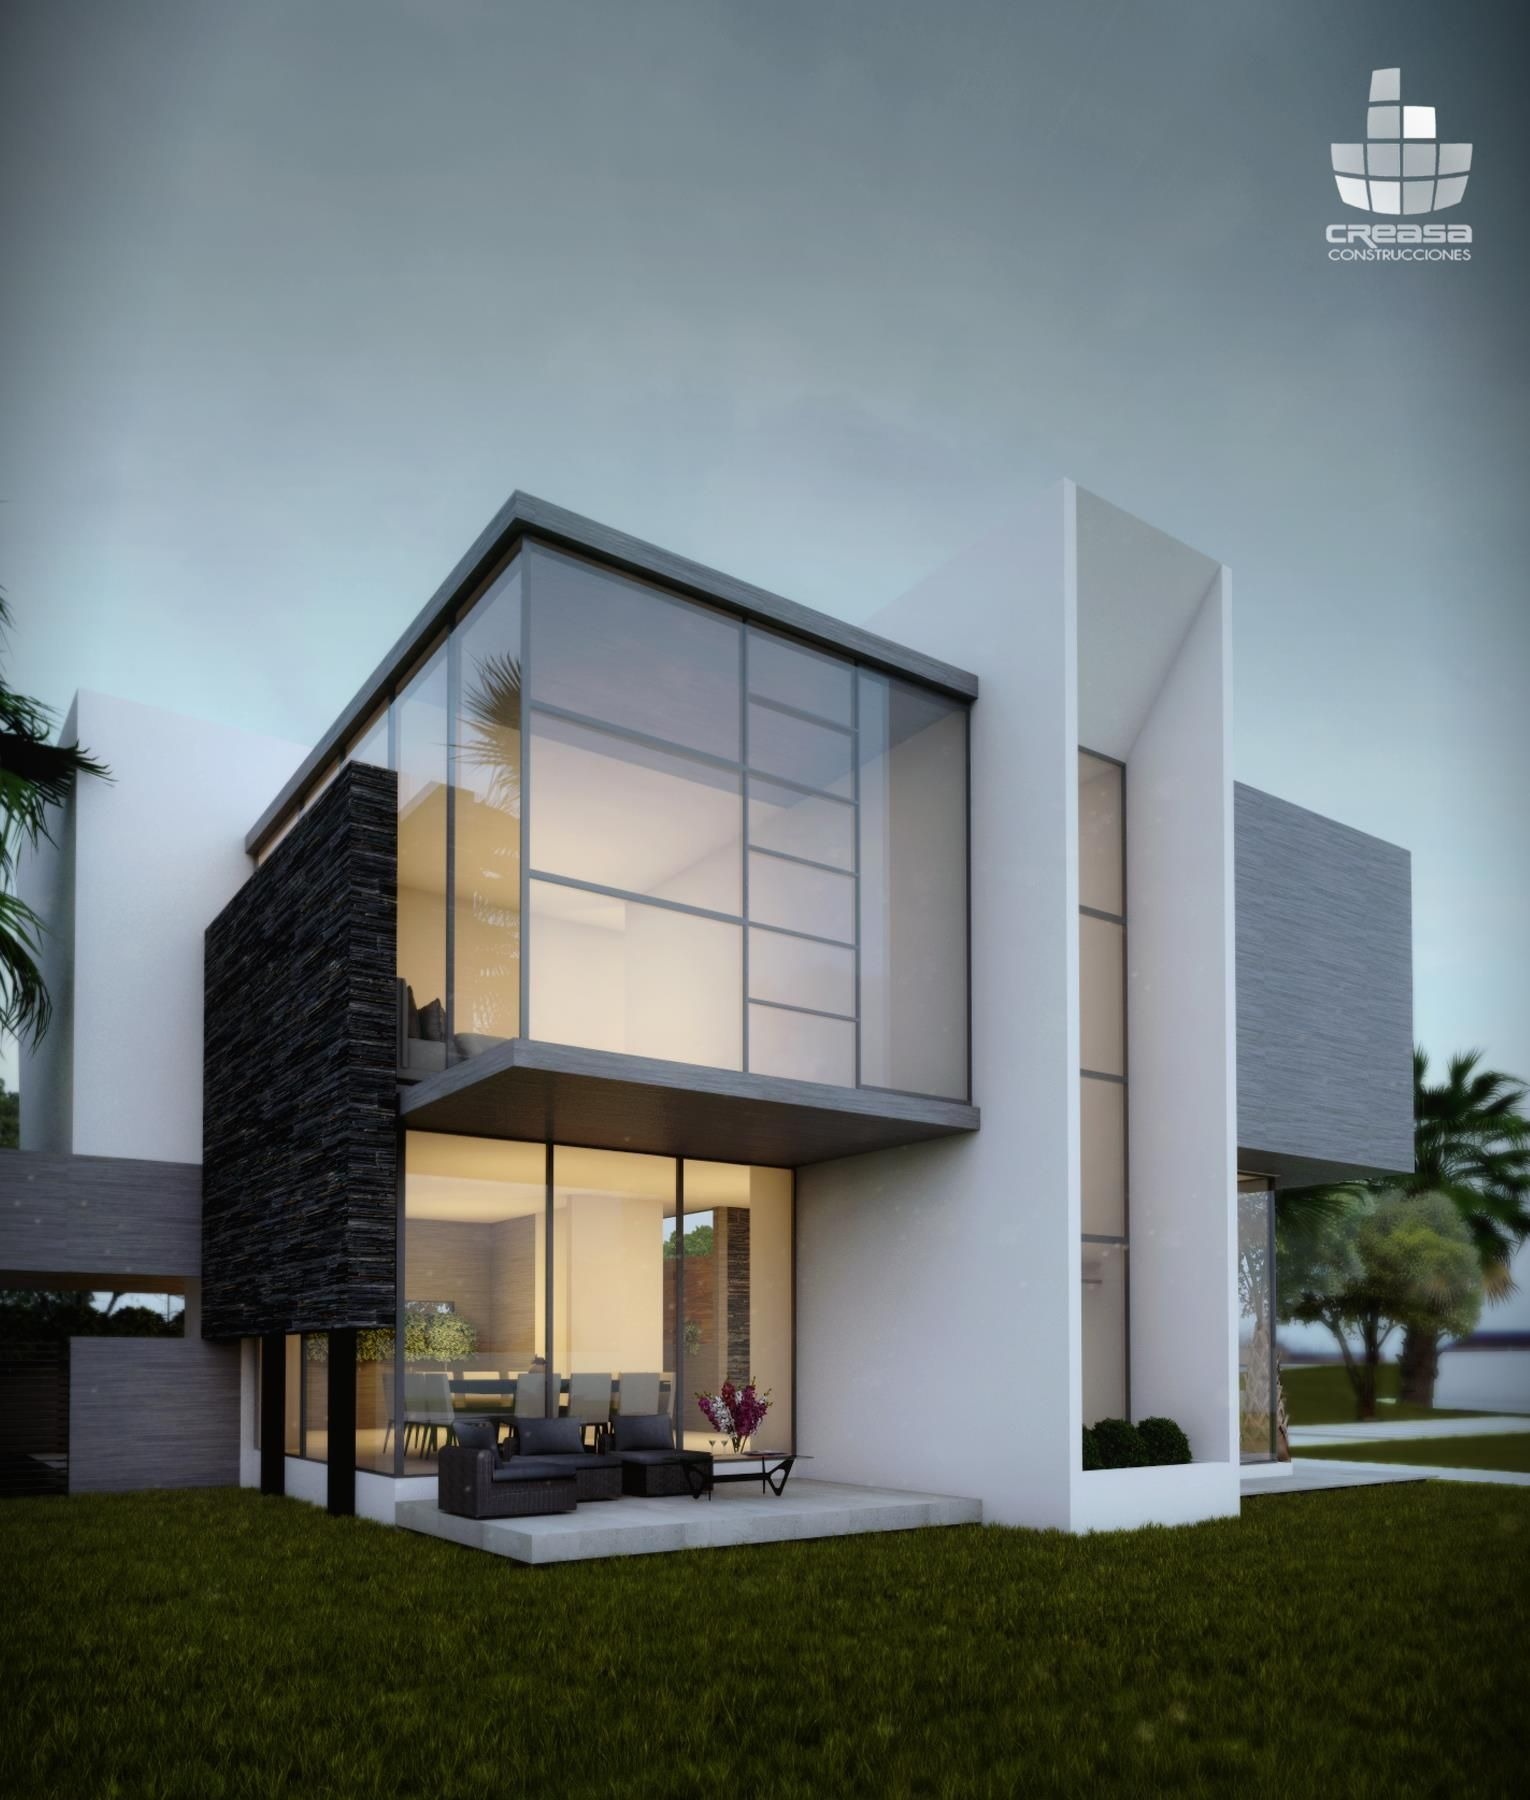 Creasa modern architecture pinterest villas house for Modern residential building design